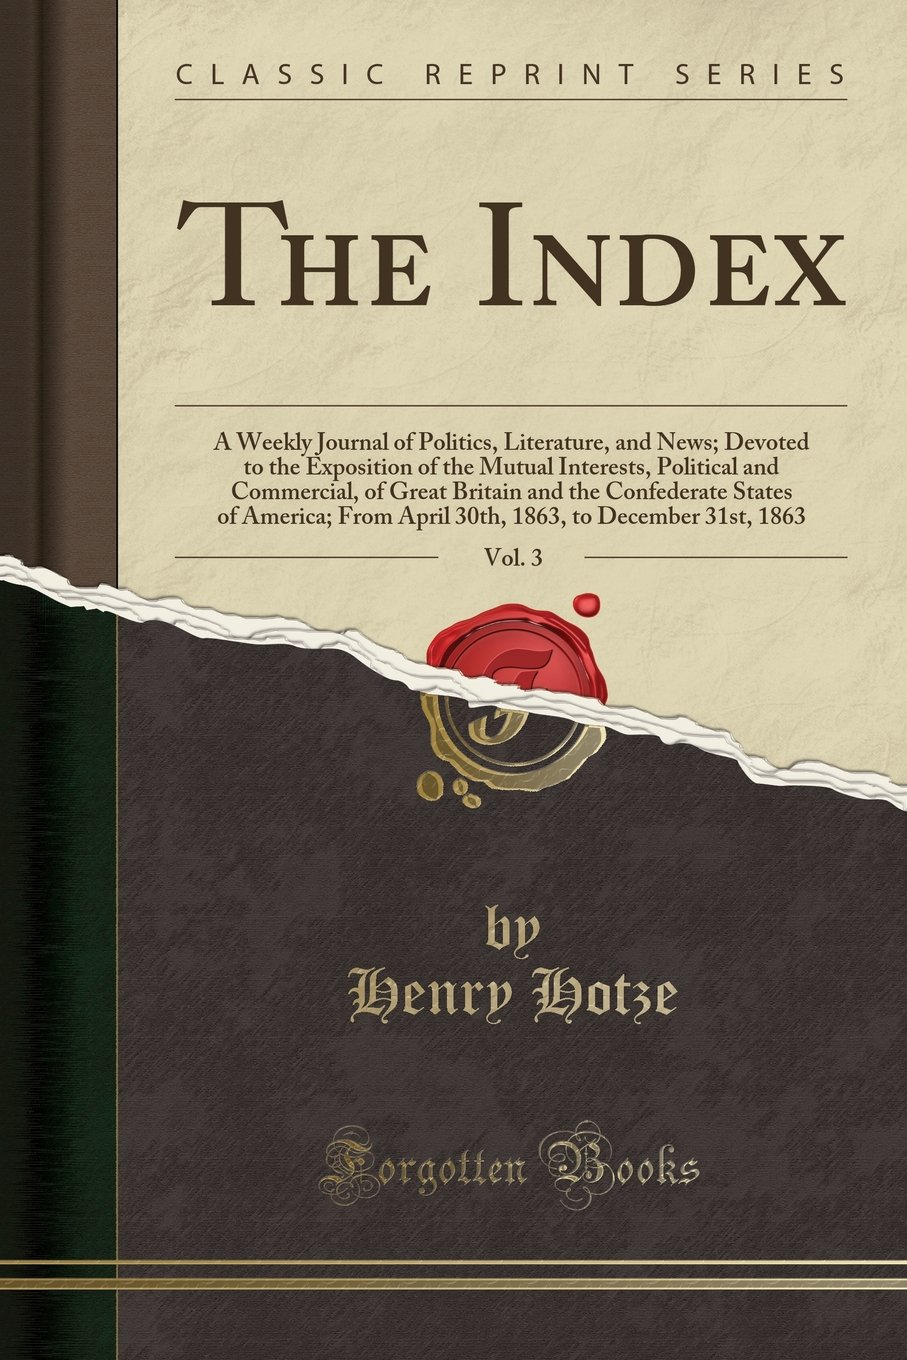 The Index, Vol. 3: A Weekly Journal of Politics, Literature, and News; Devoted to the Exposition of the Mutual Interests, Political and Commercial, of ... From April 30th, 1863, to December 31st, 1863 ebook